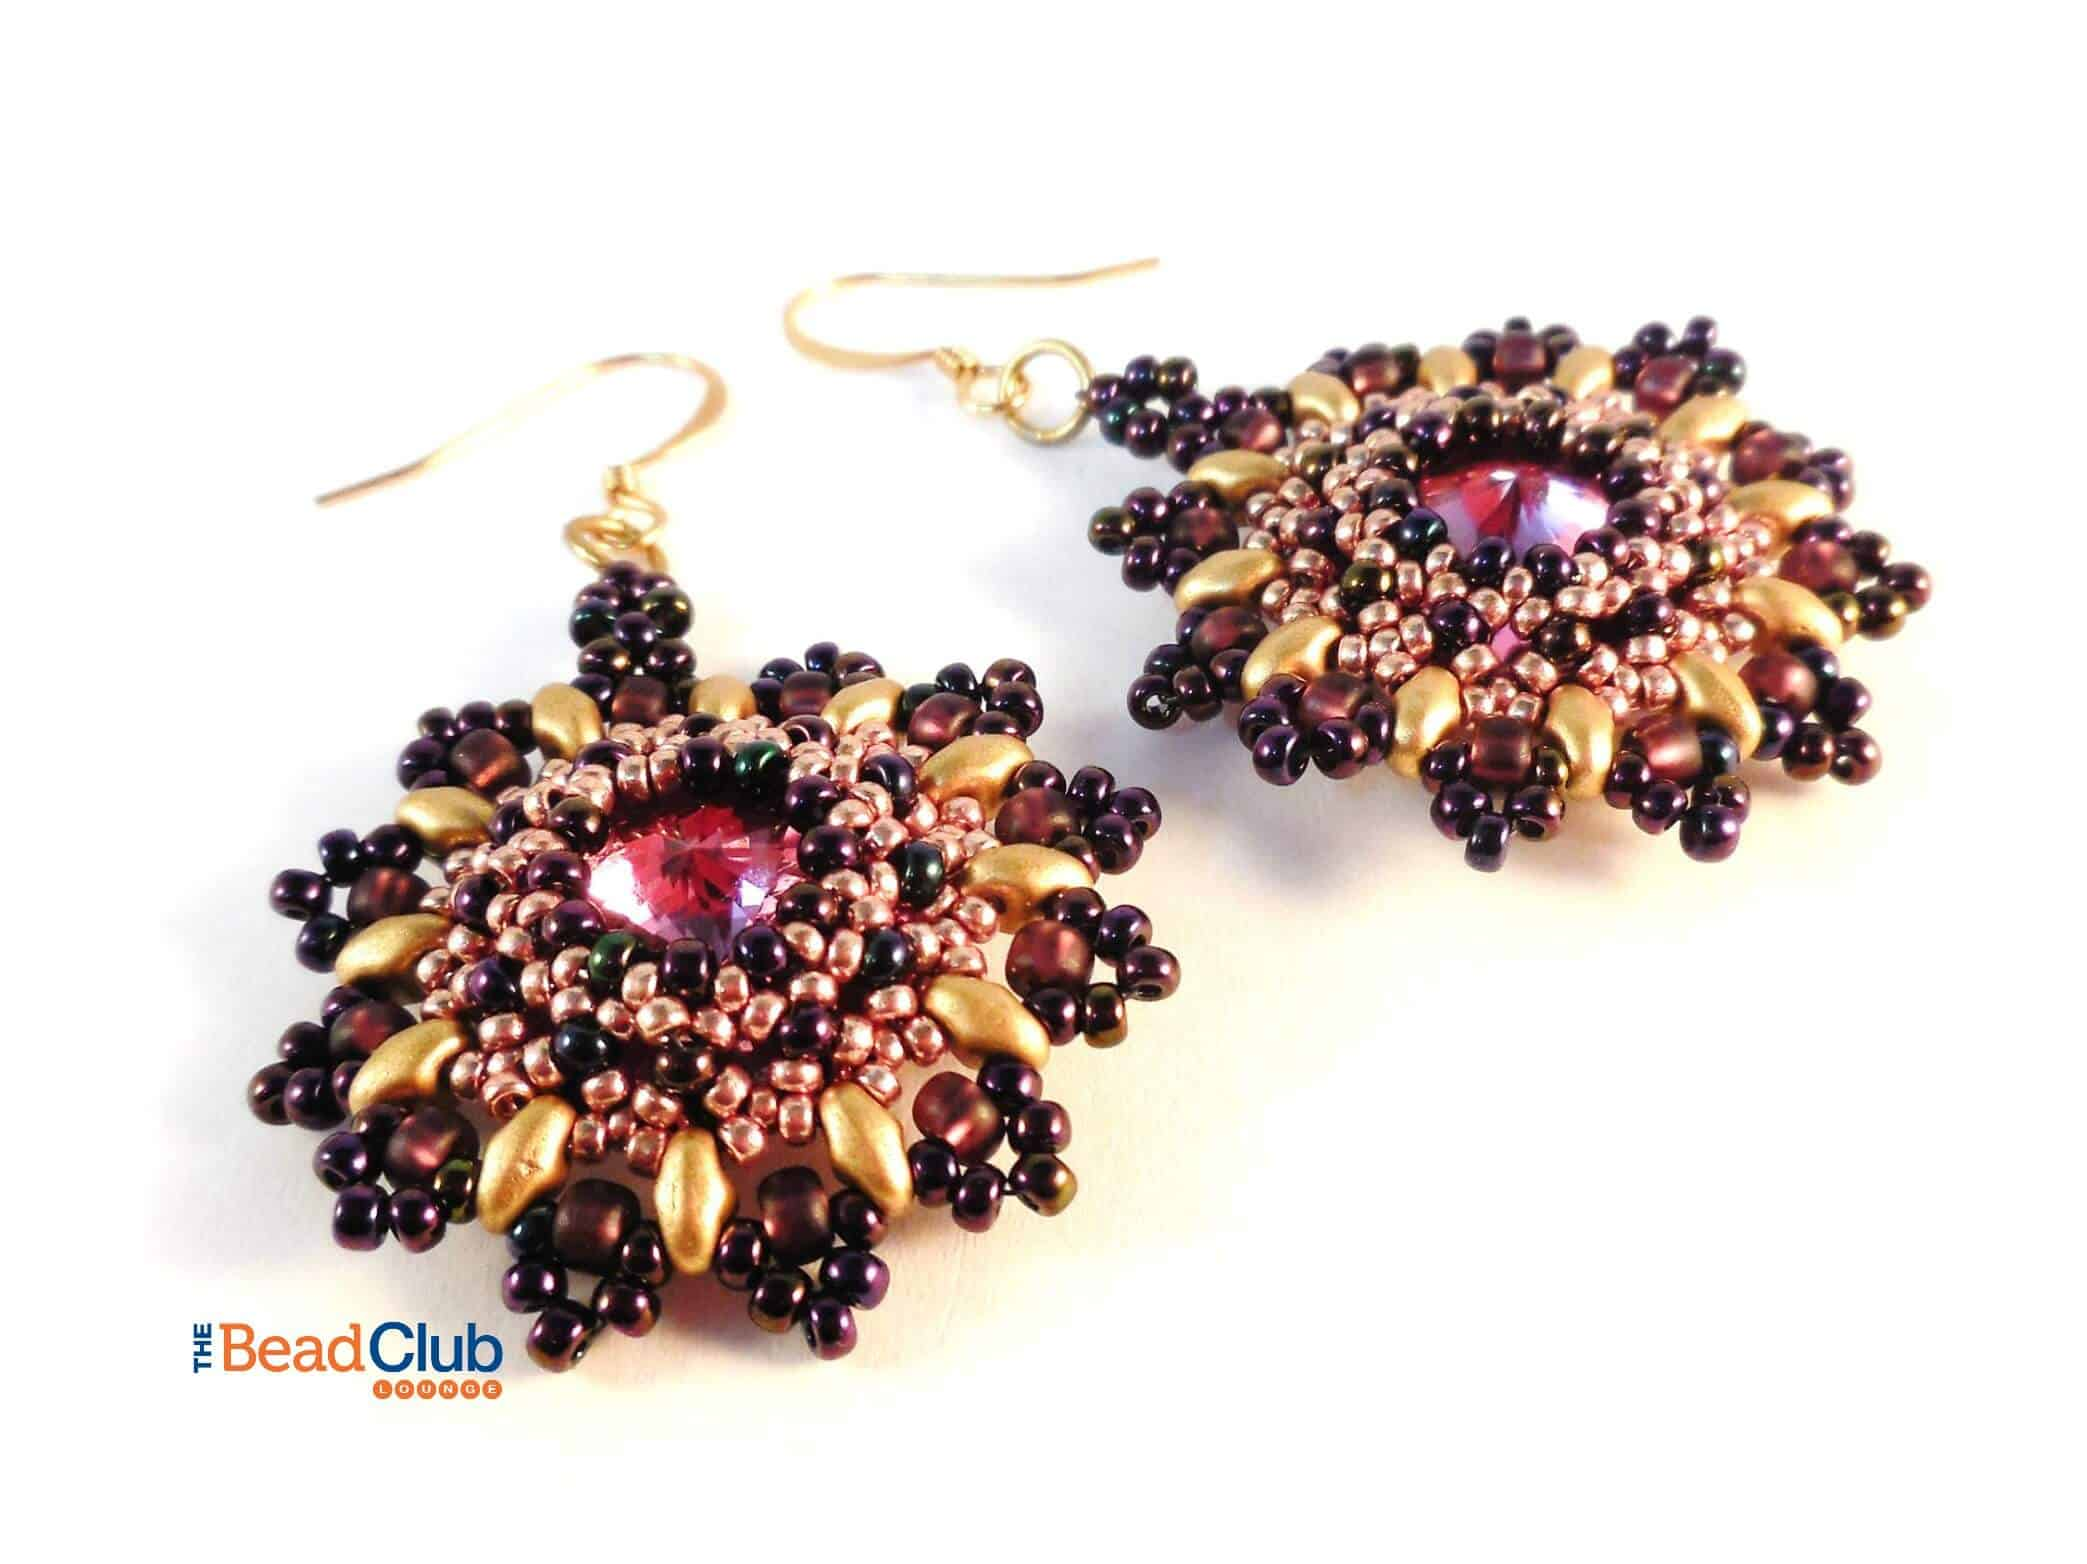 Download the Right Angle Weave beading pattern, Sunflower Earrings.